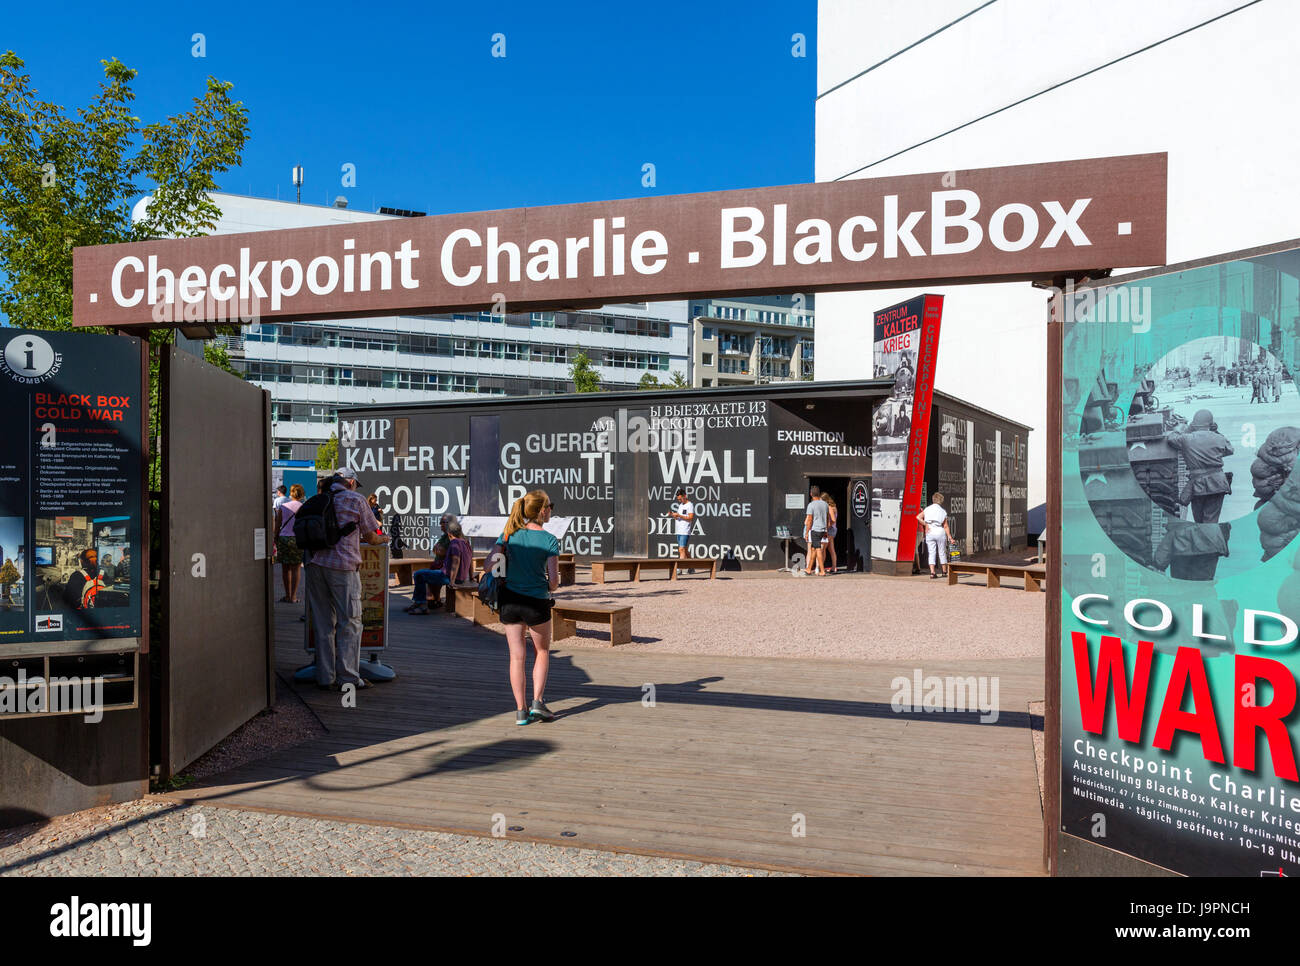 Entrance to Black Box, an information pavilion on the history of Checkpoint Charlie and the Berlin Wall, Berlin, - Stock Image